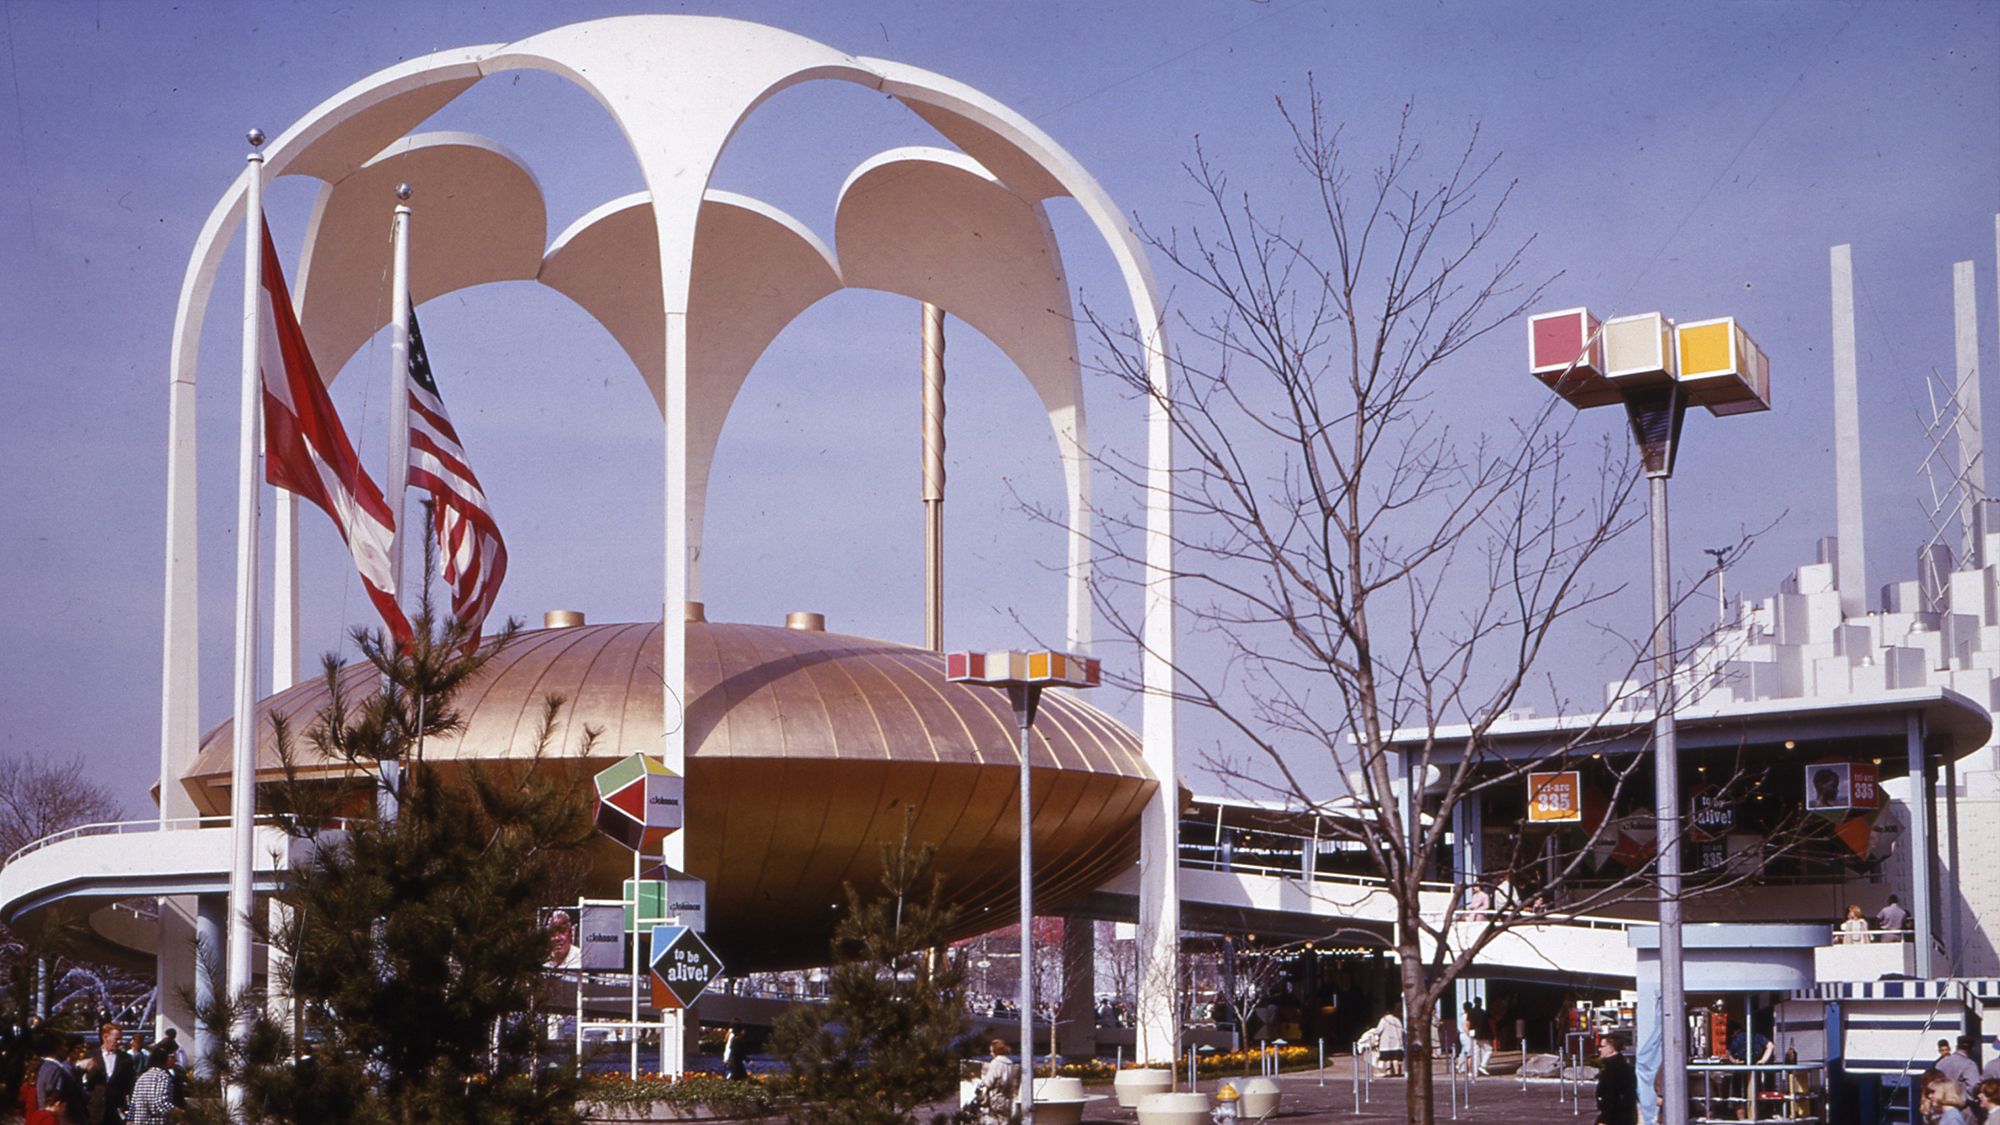 Le Pavillon SC Johnson de 1964, maintenant connu sous le nom de Golden Rondelle Theatre